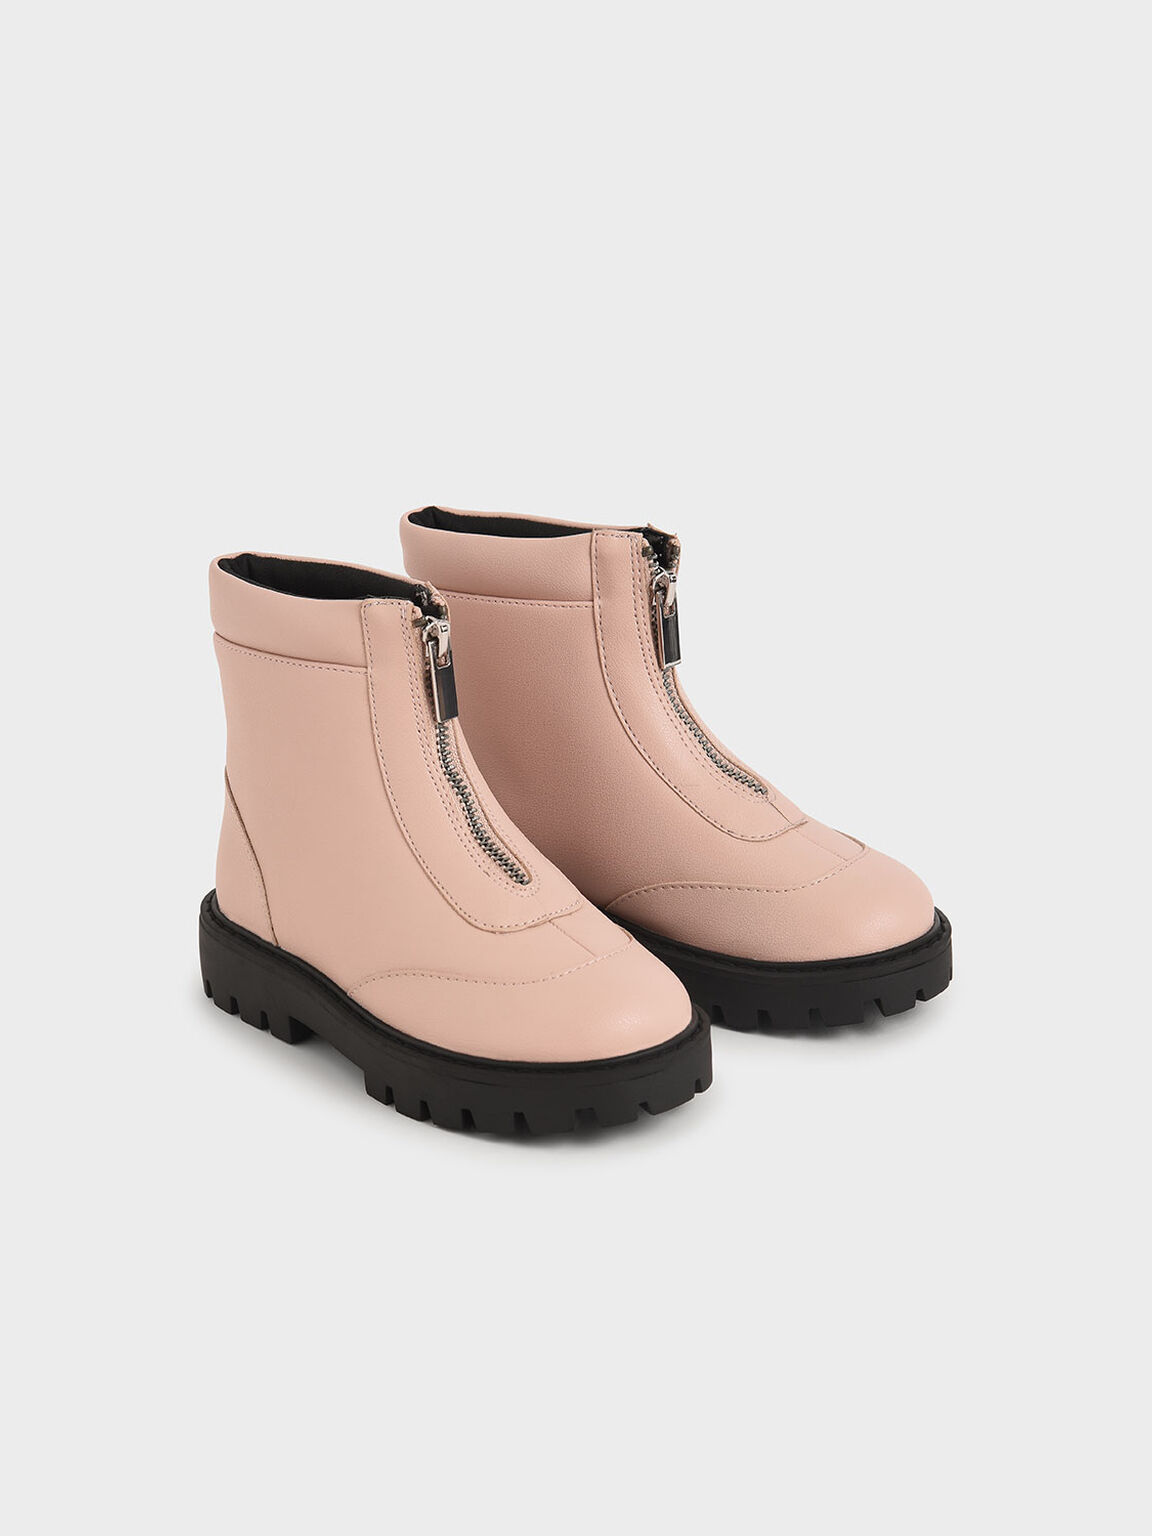 Girl's Front Zip Ankle Boots, Light Pink, hi-res